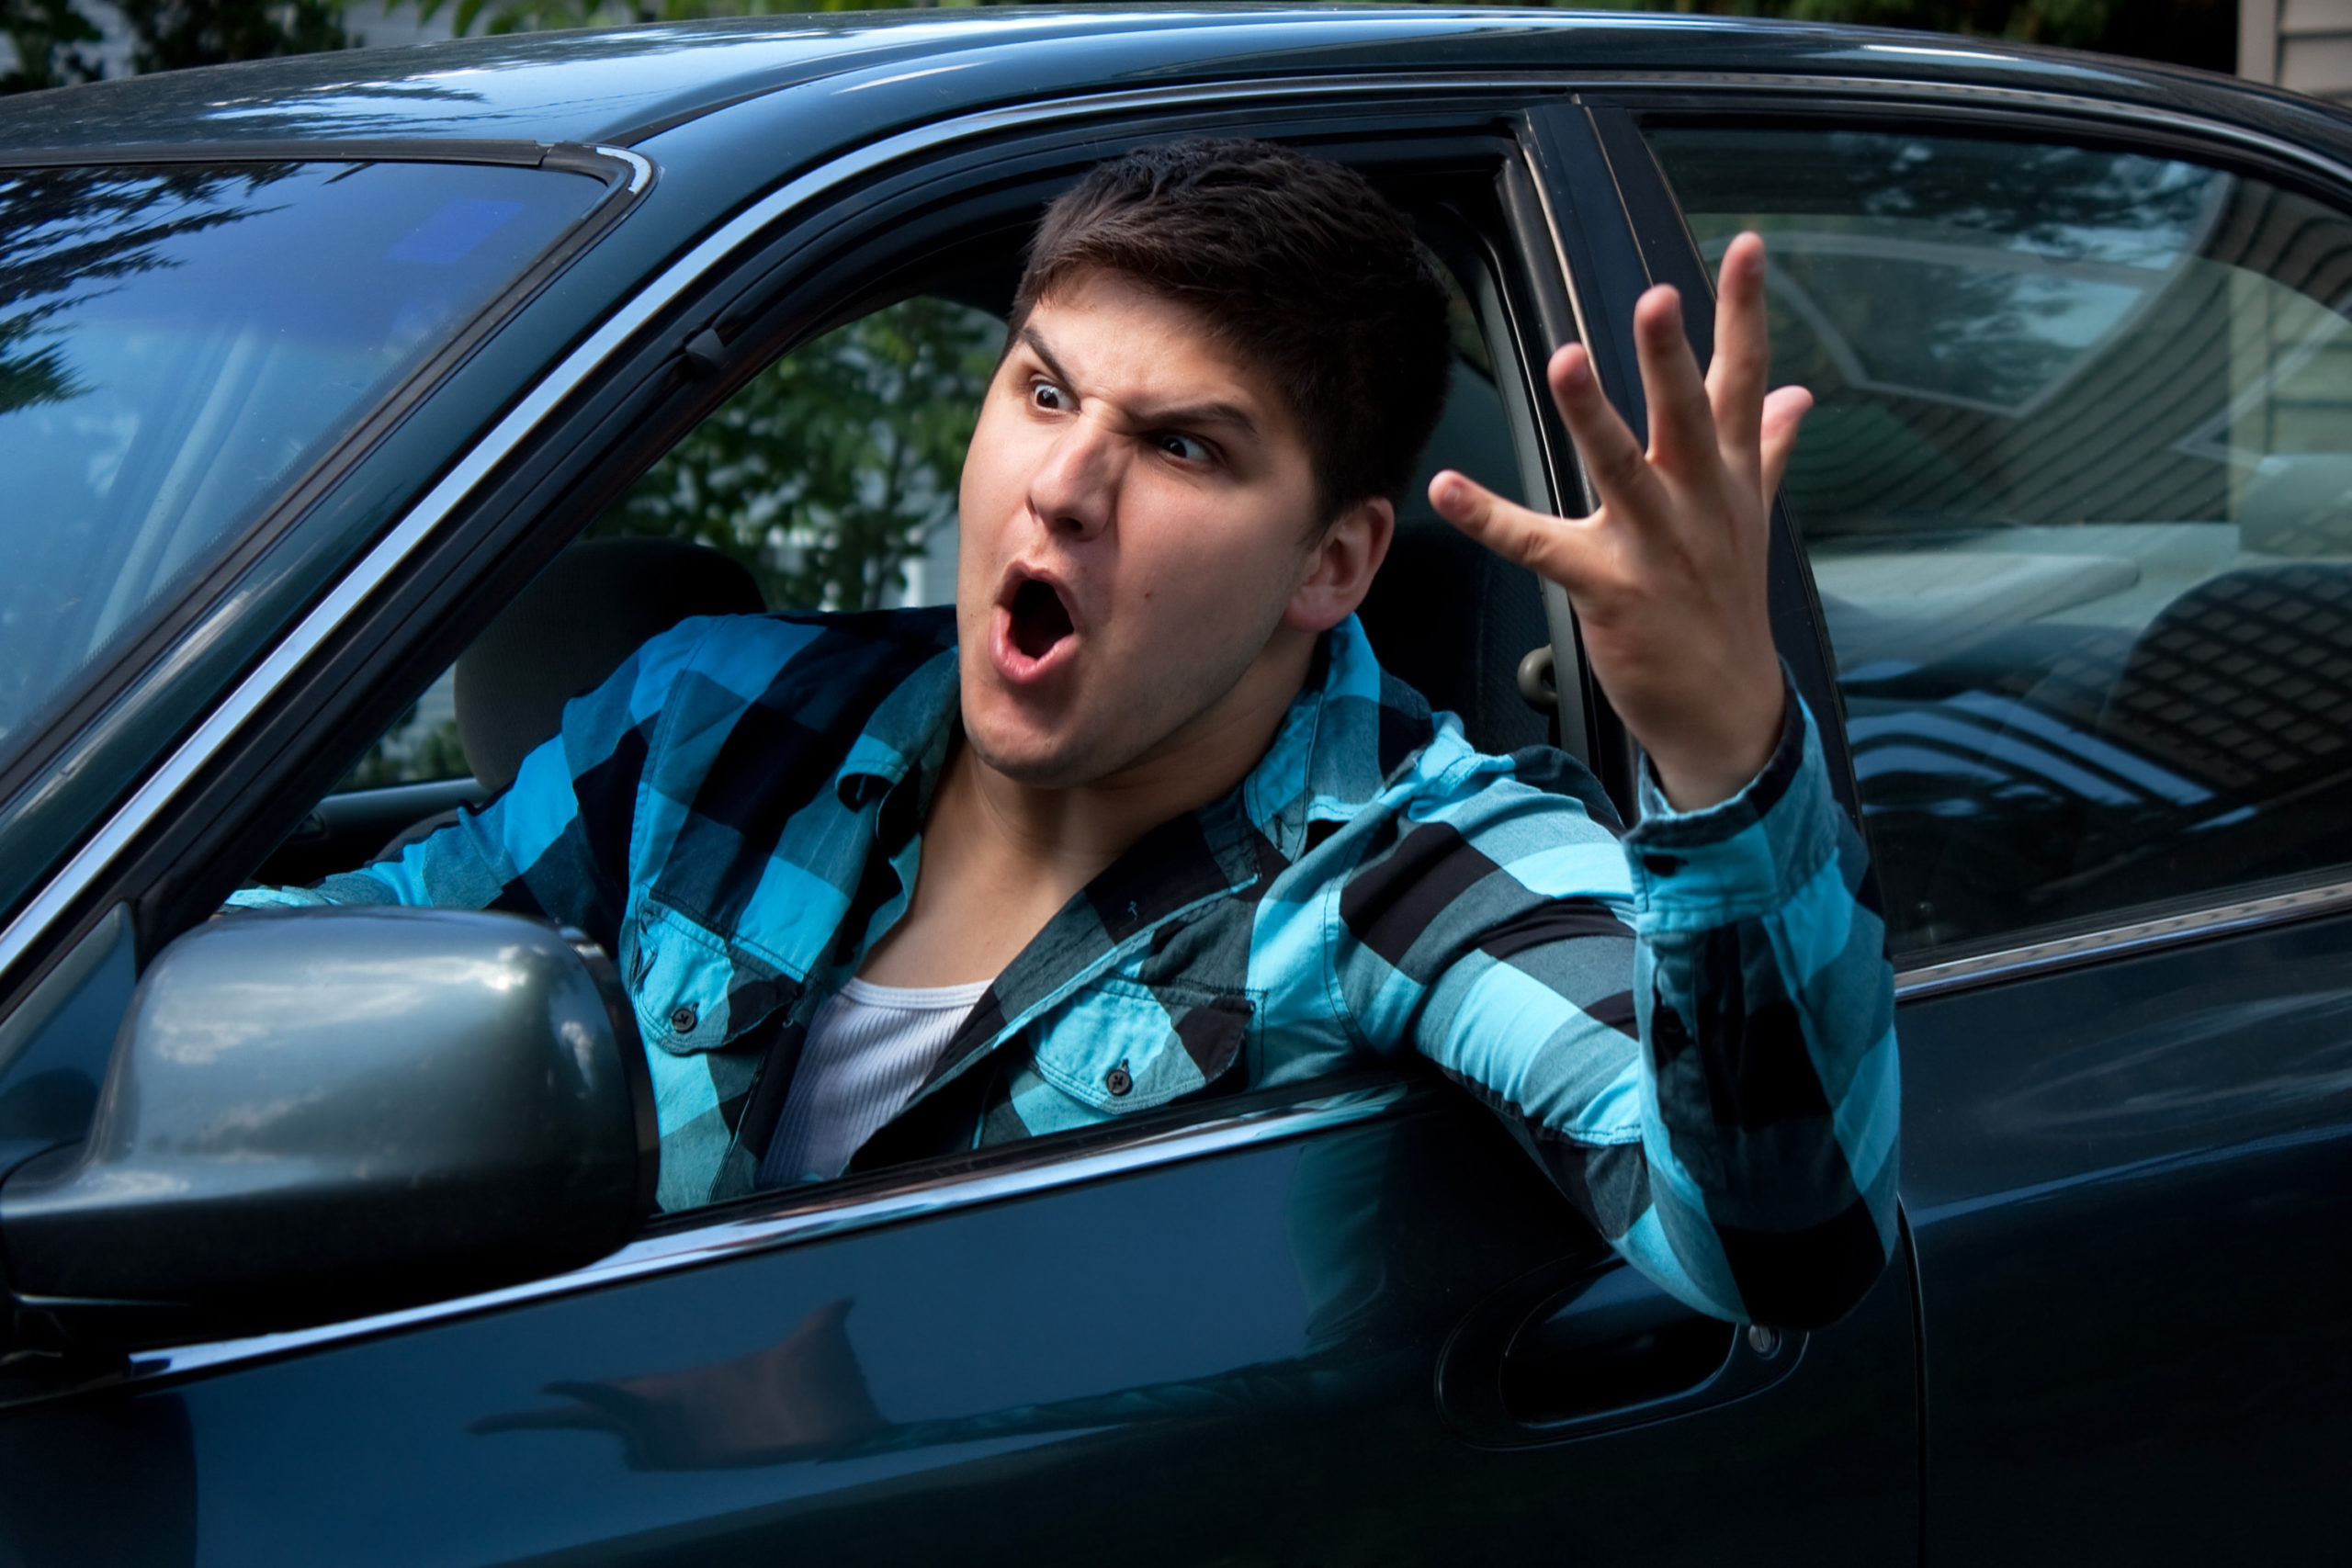 Here's How To Tell If You're A Road Rager